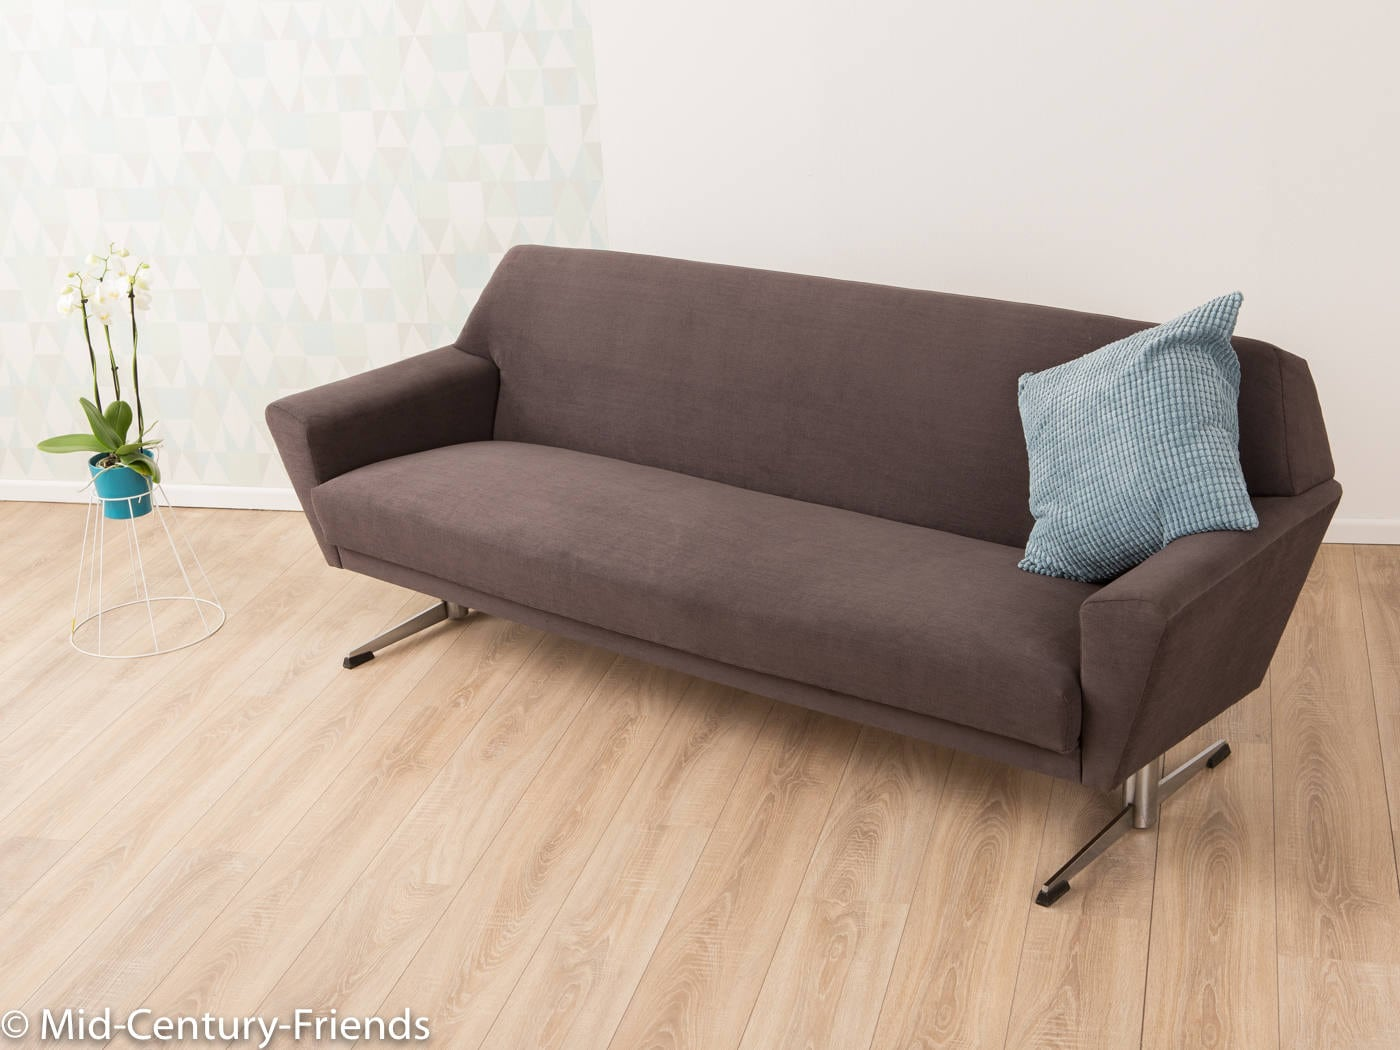 60s sofa couch 50s vintage 702002